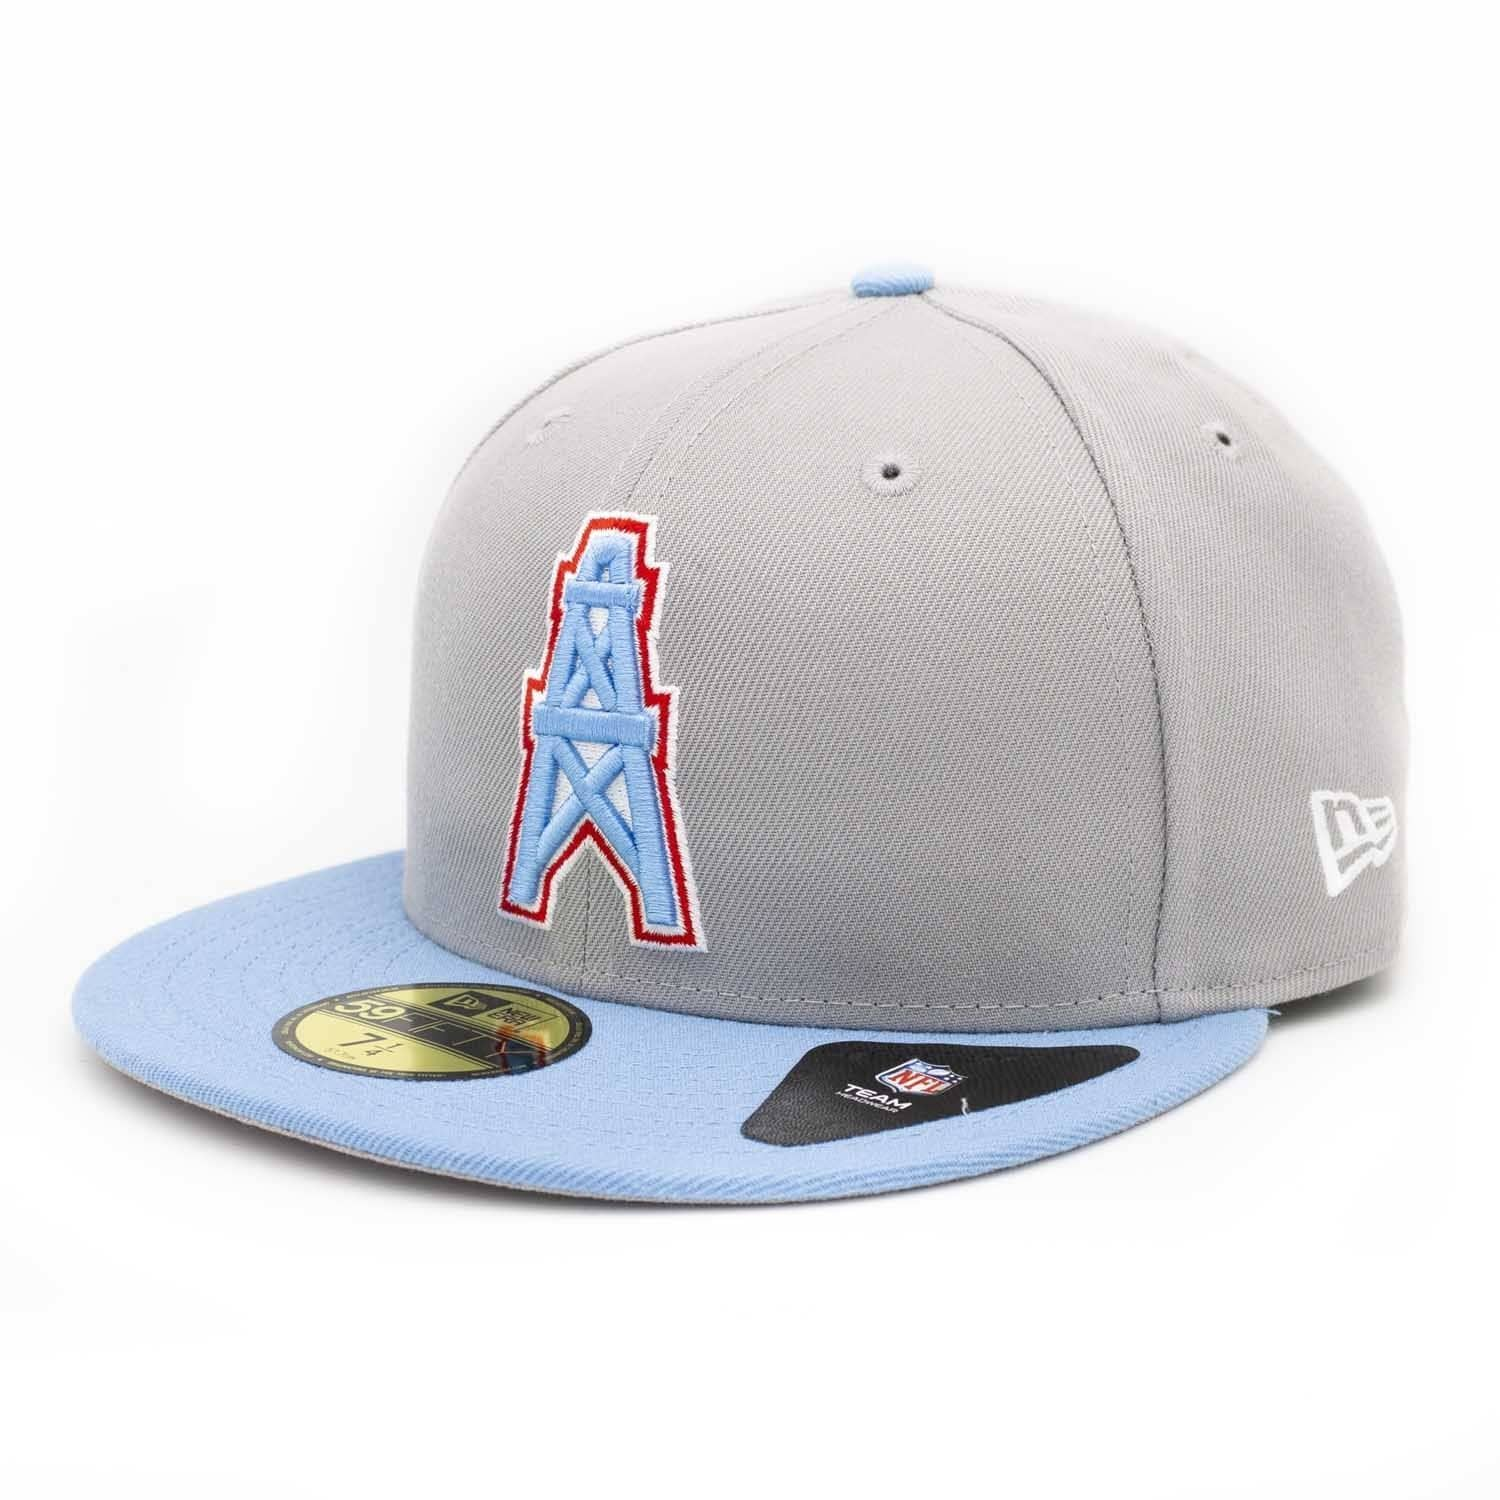 c5136308 Houston Oilers Throwback 59FIFTY Fitted NFL Cap